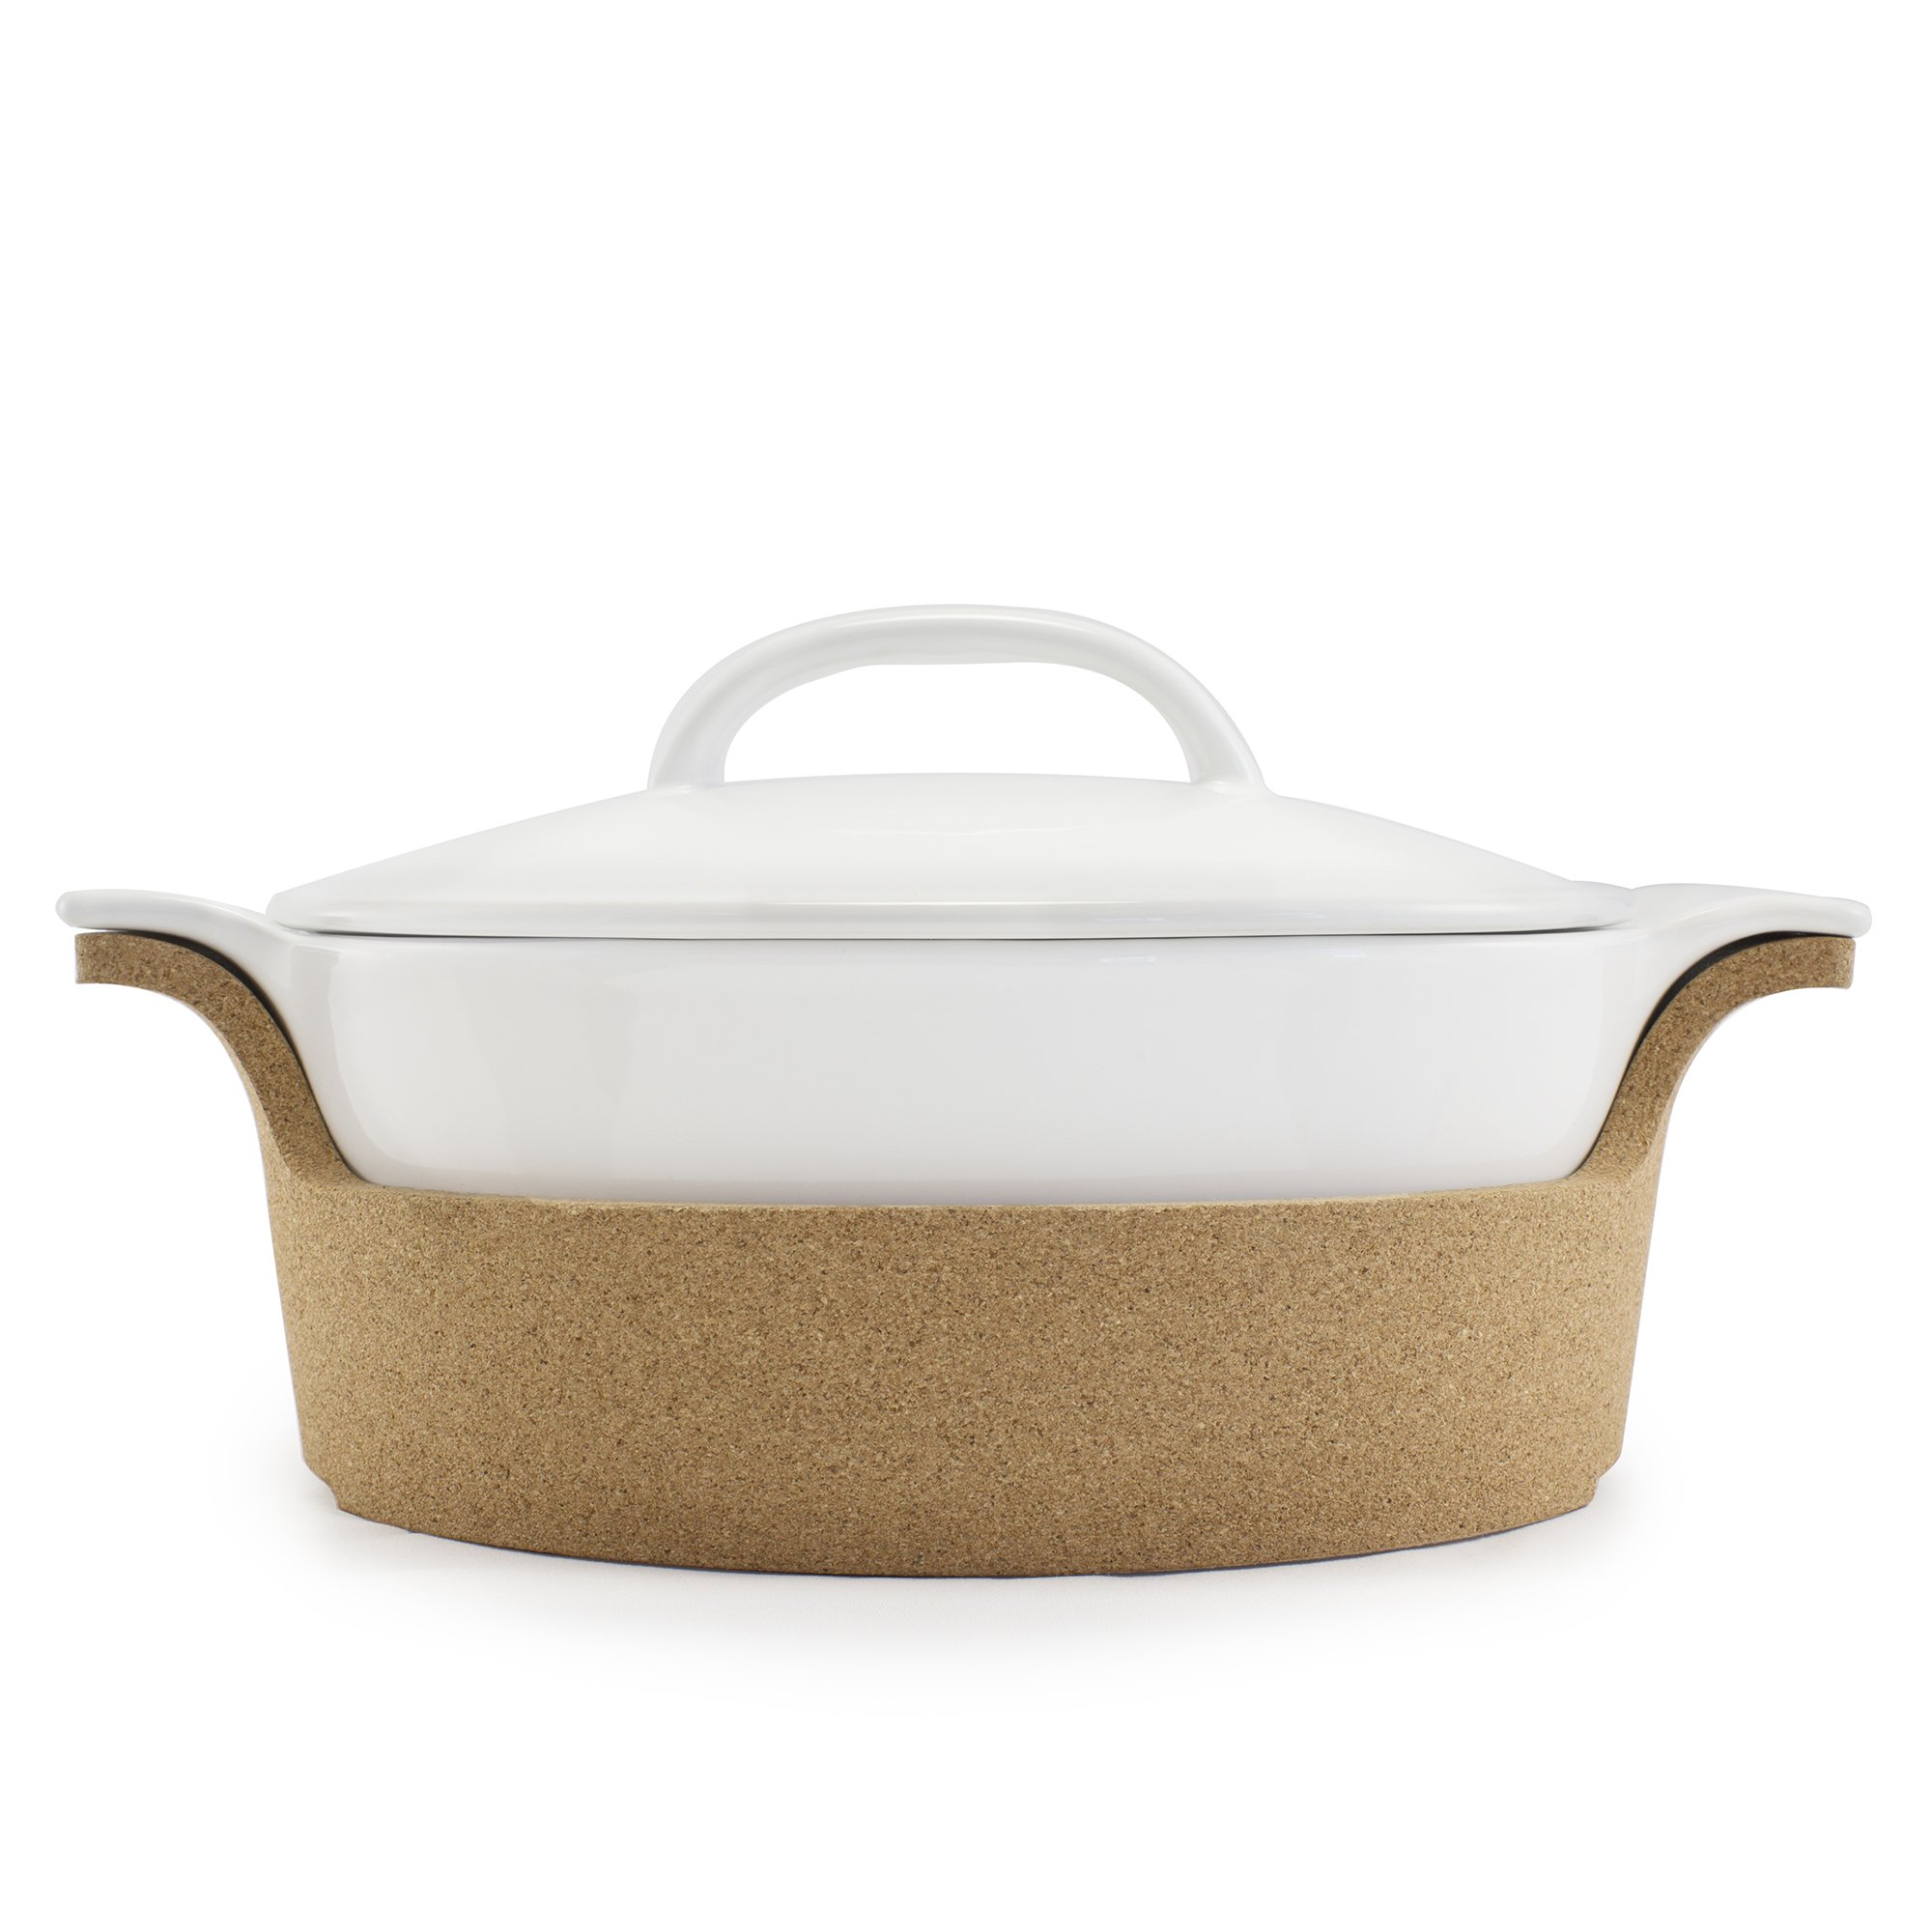 Bambeco Ensemble Covered Casserole Baker with Cork Tray